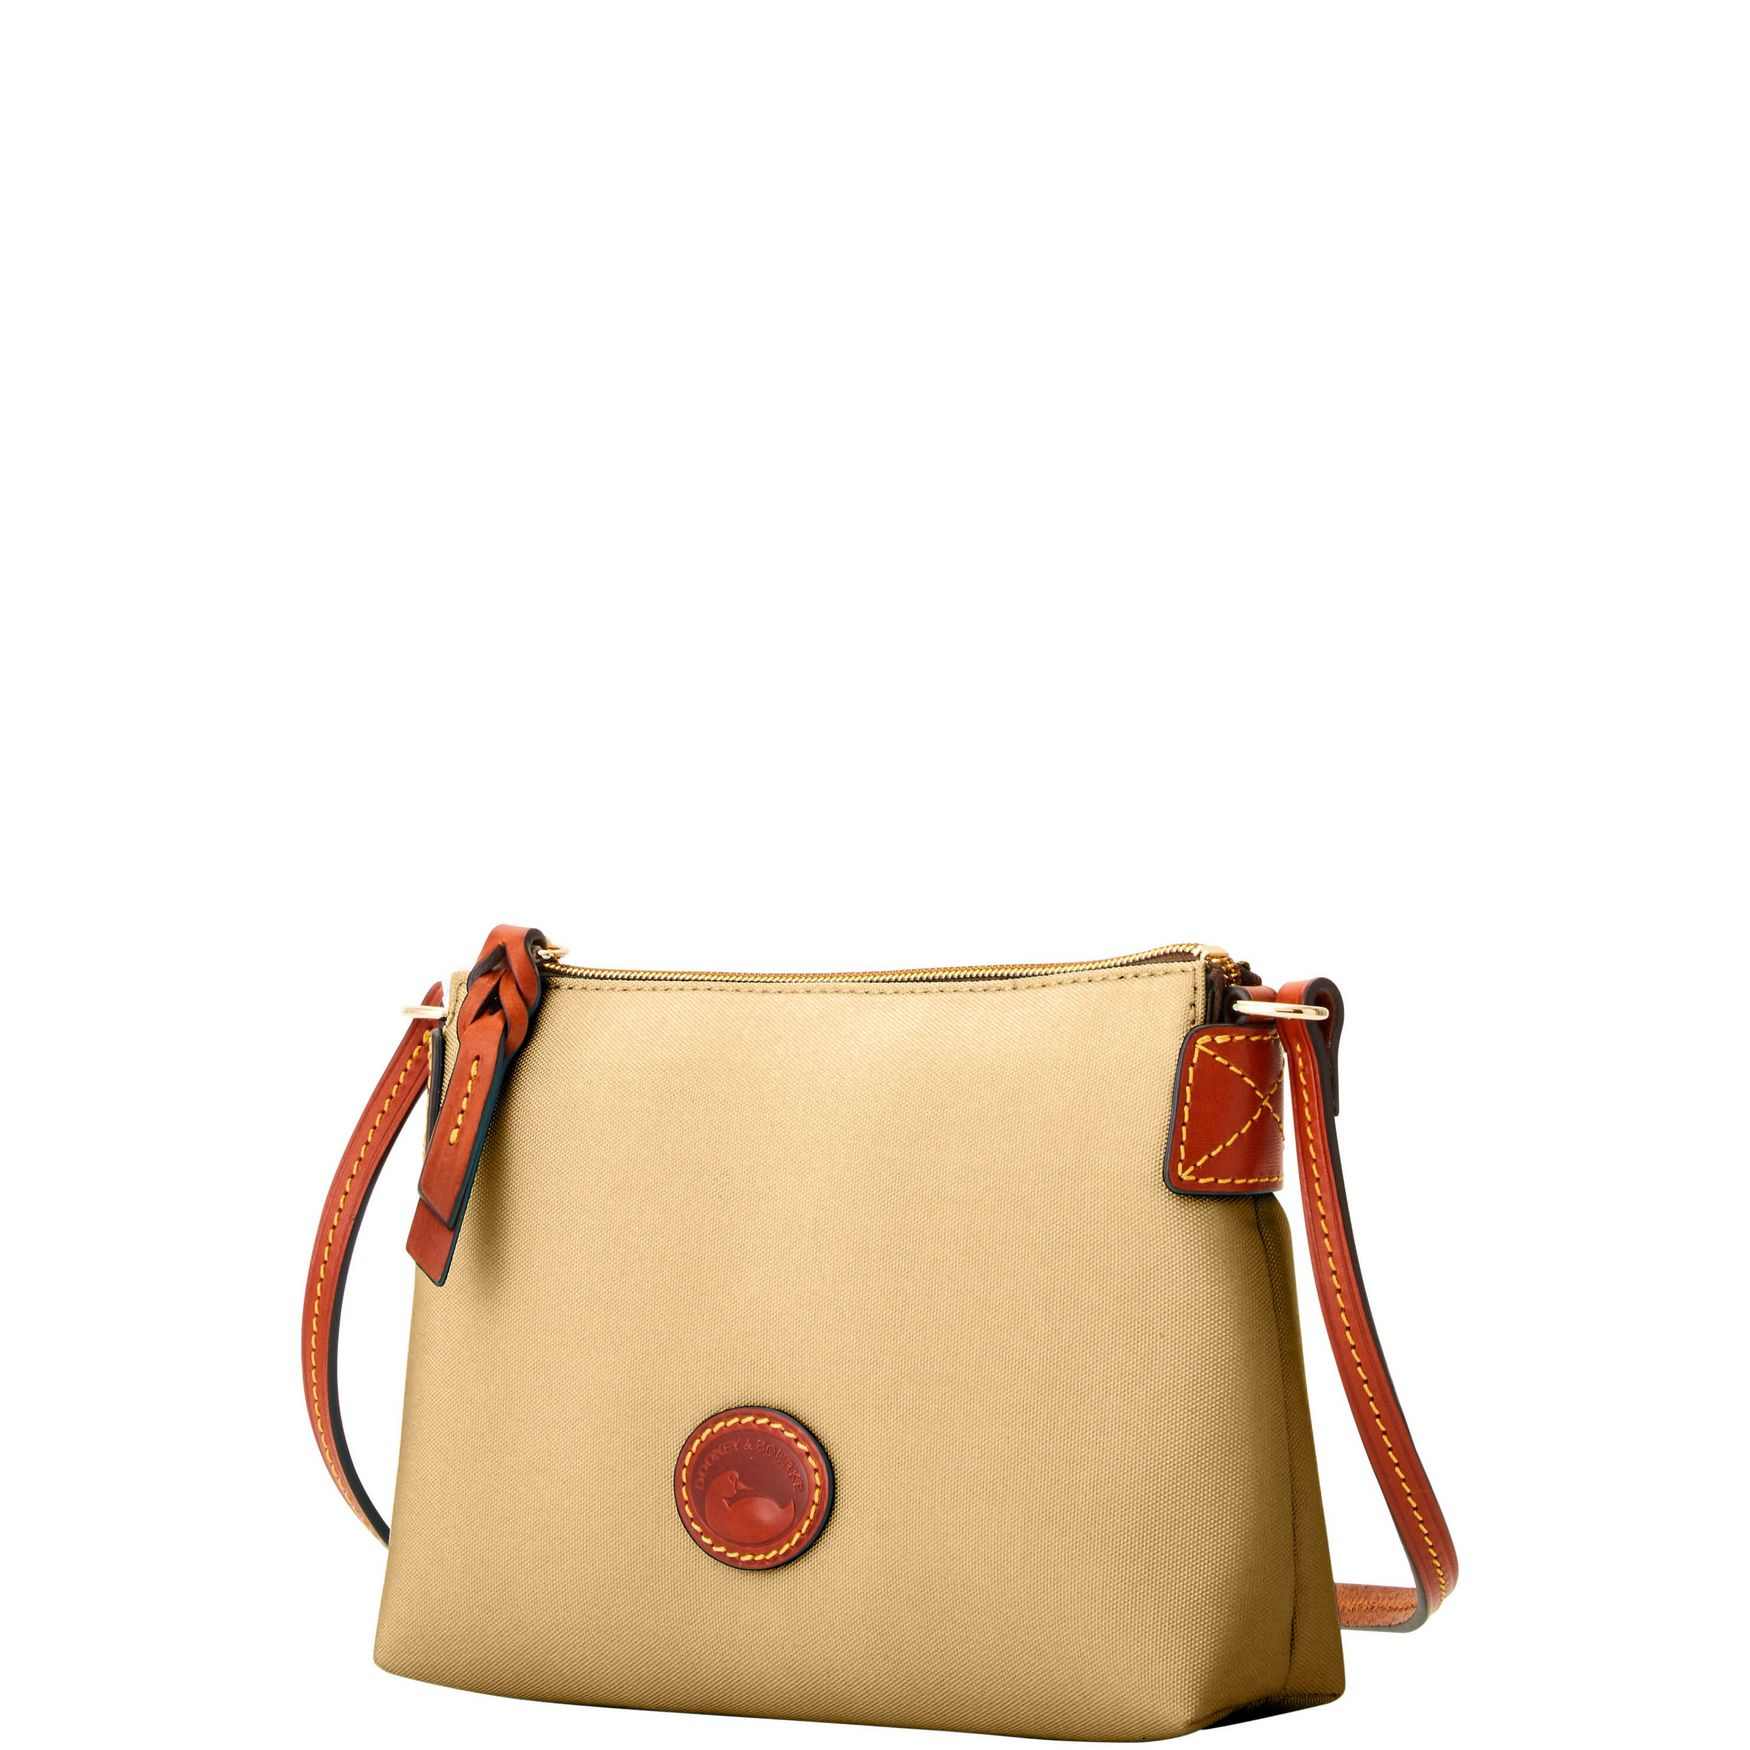 Dooney-amp-Bourke-Nylon-Crossbody-Pouchette-Shoulder-Bag thumbnail 33